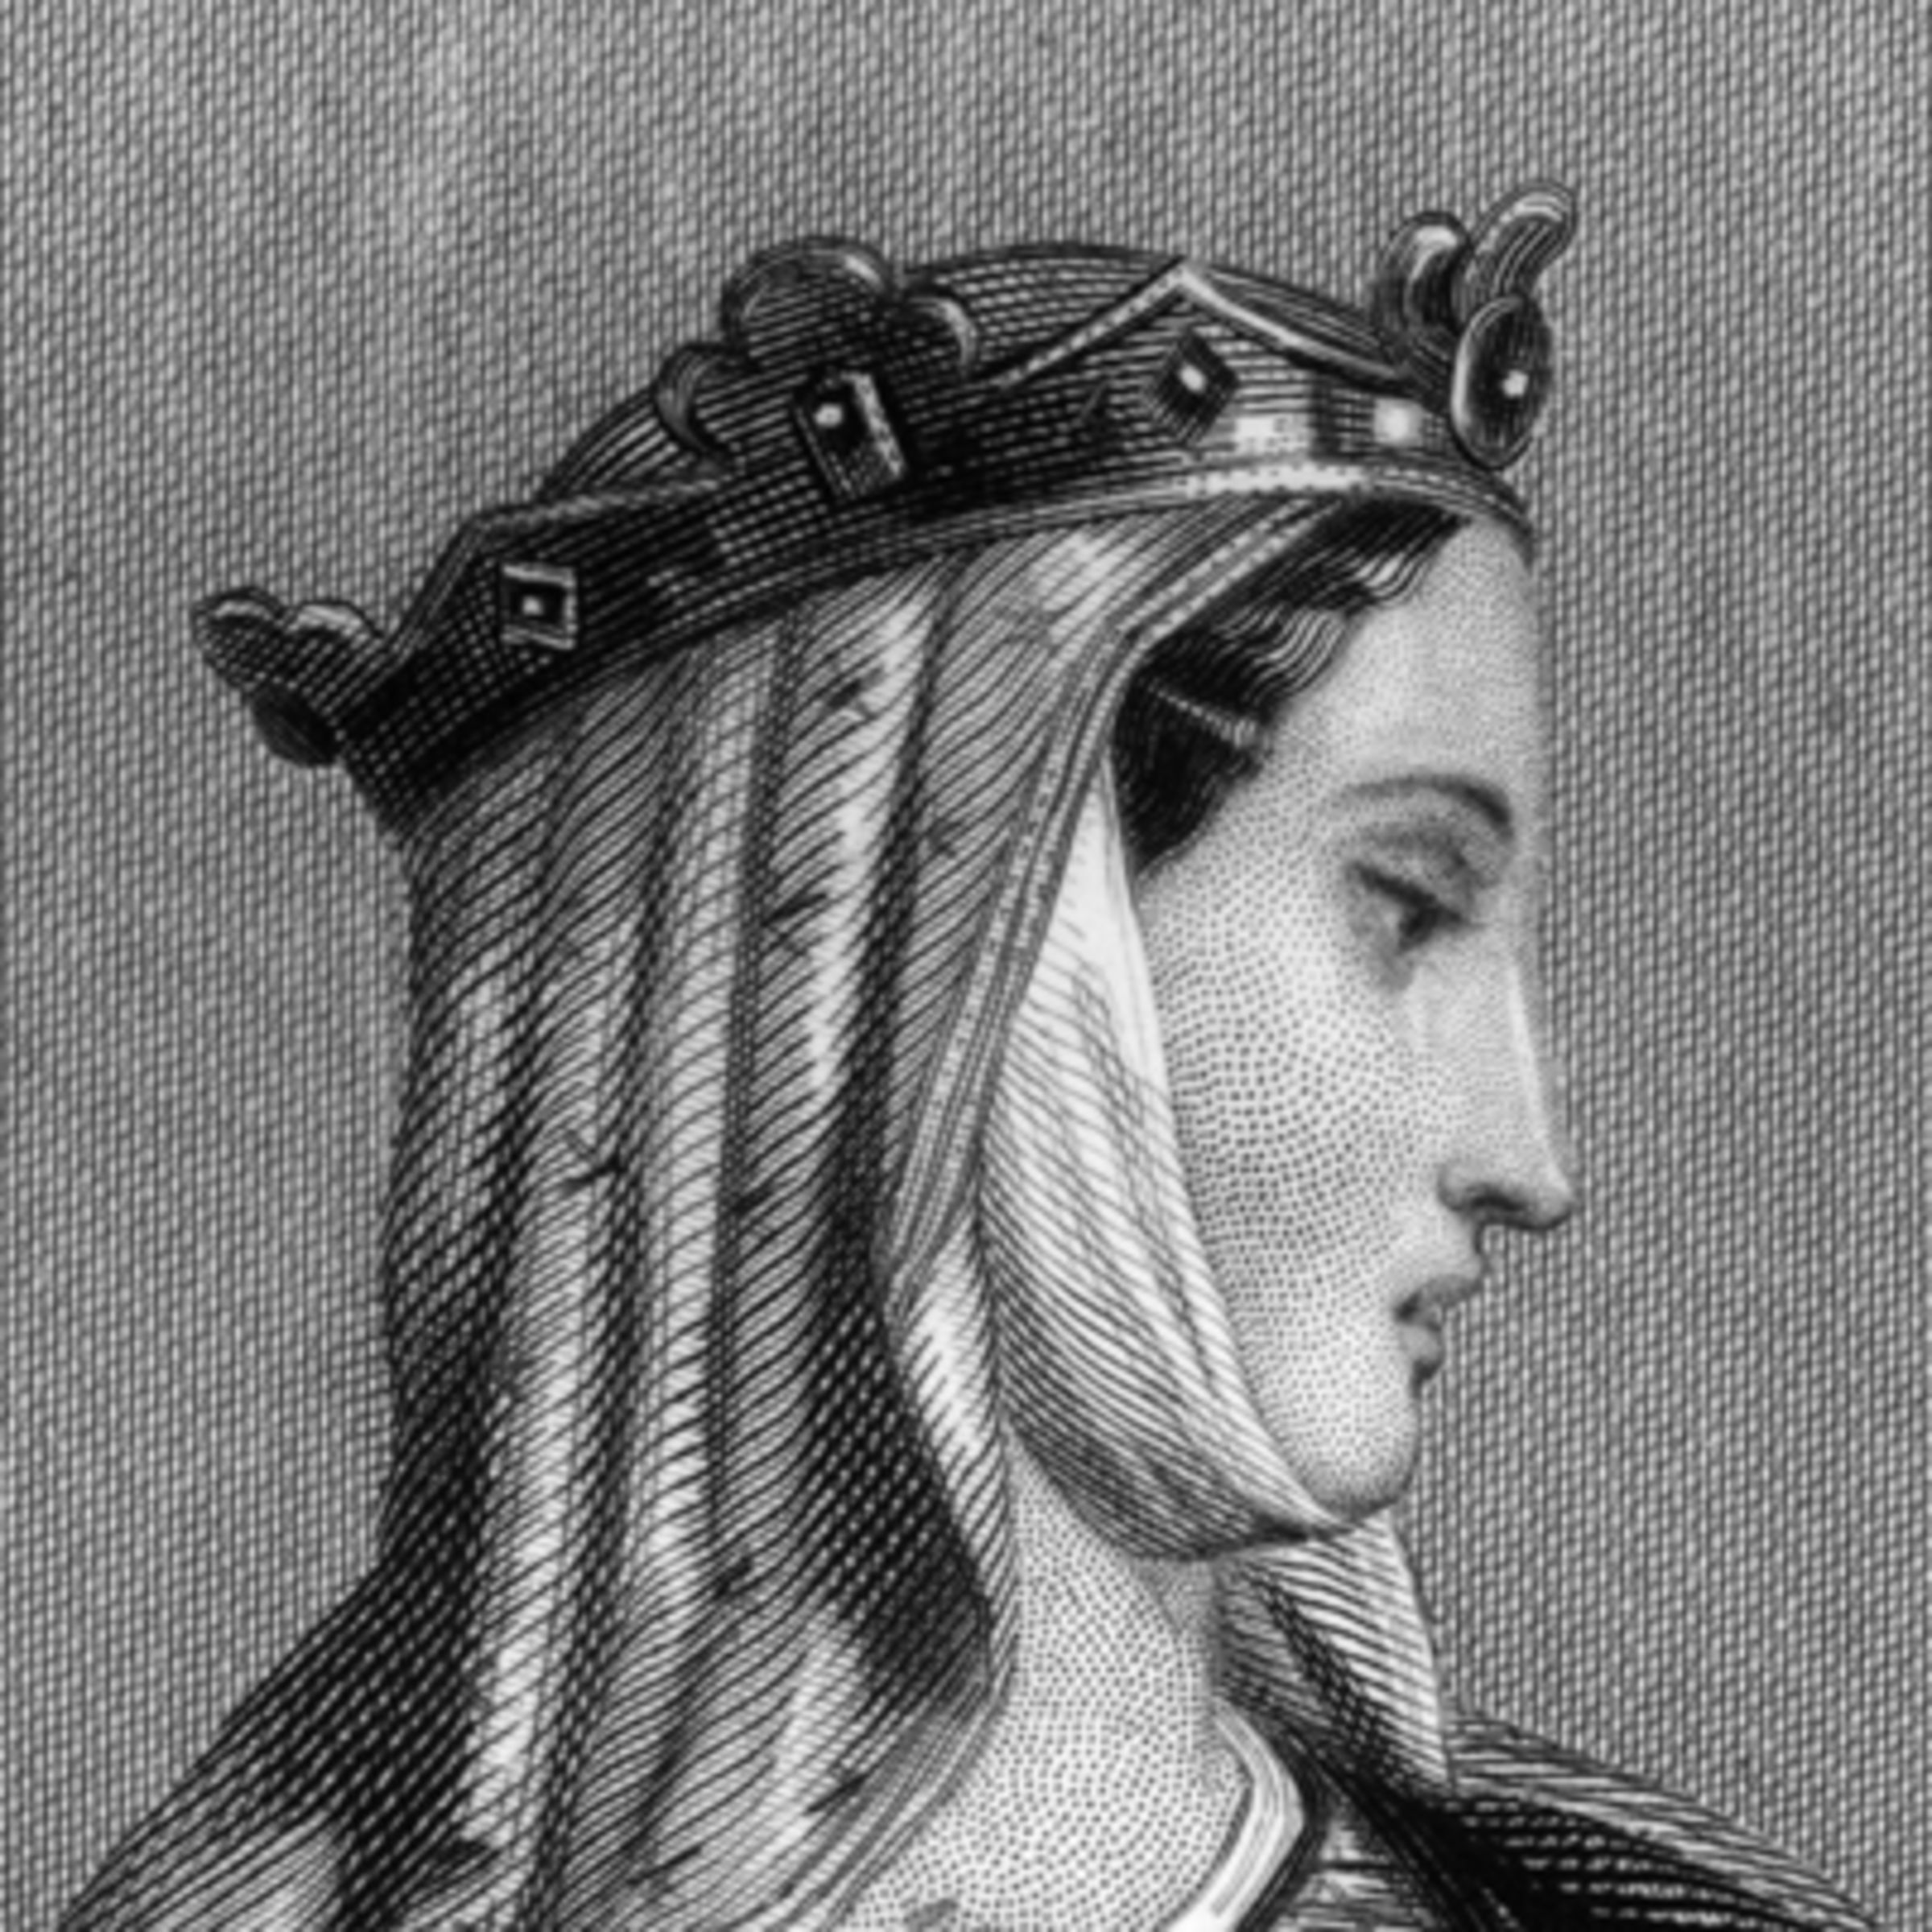 Biography Com Presents Eleanor Of Aquitaine Wife Of Henry Ii And